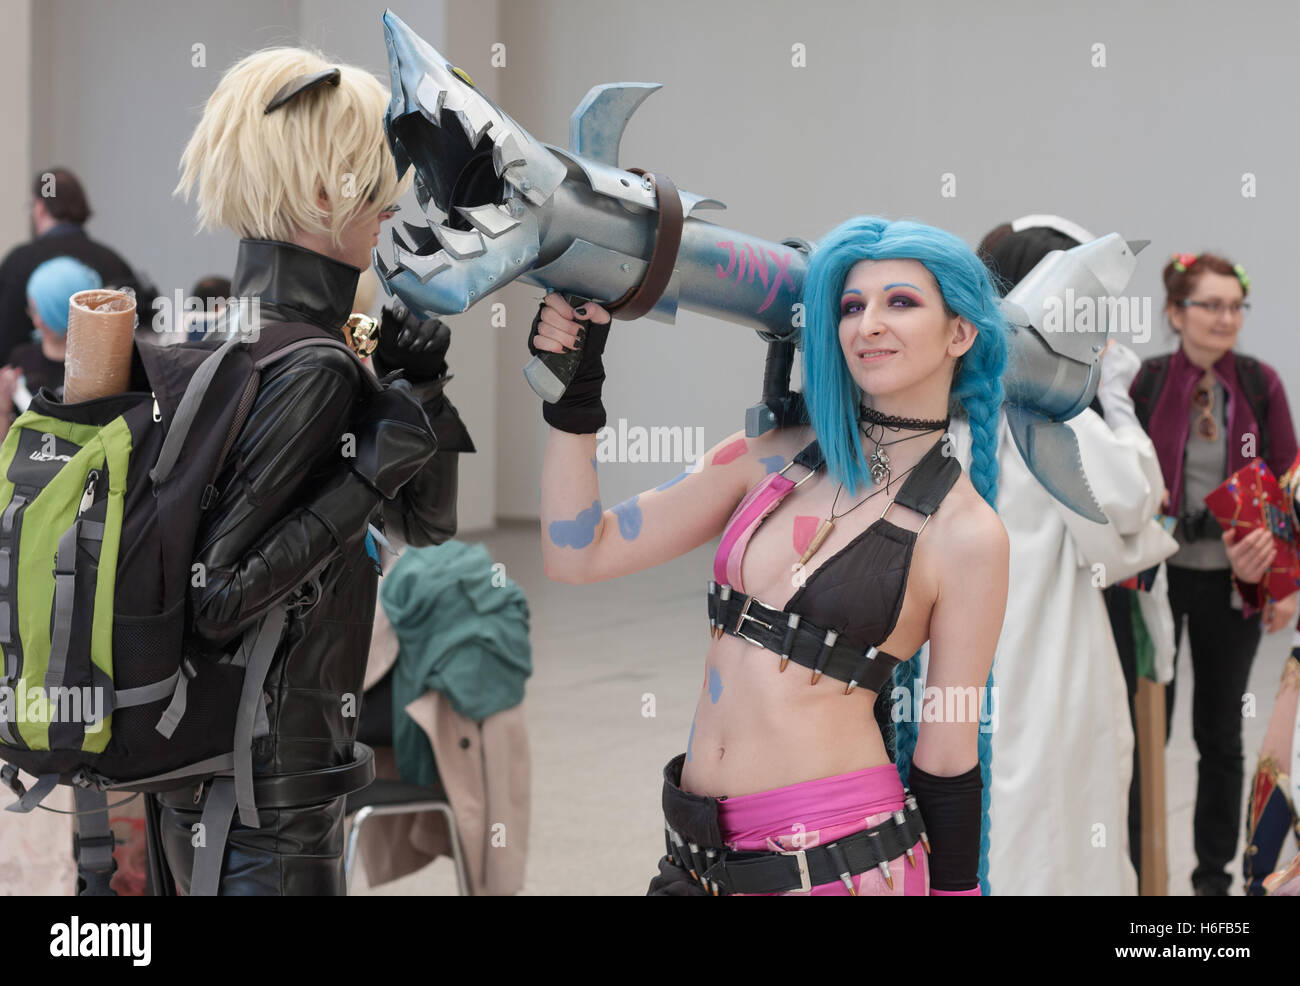 BRNO, CZECH REPUBLIC - APRIL 30, 2016: Cosplayer dressed as character Jinx from League of Legends poses at Animefest - Stock Image